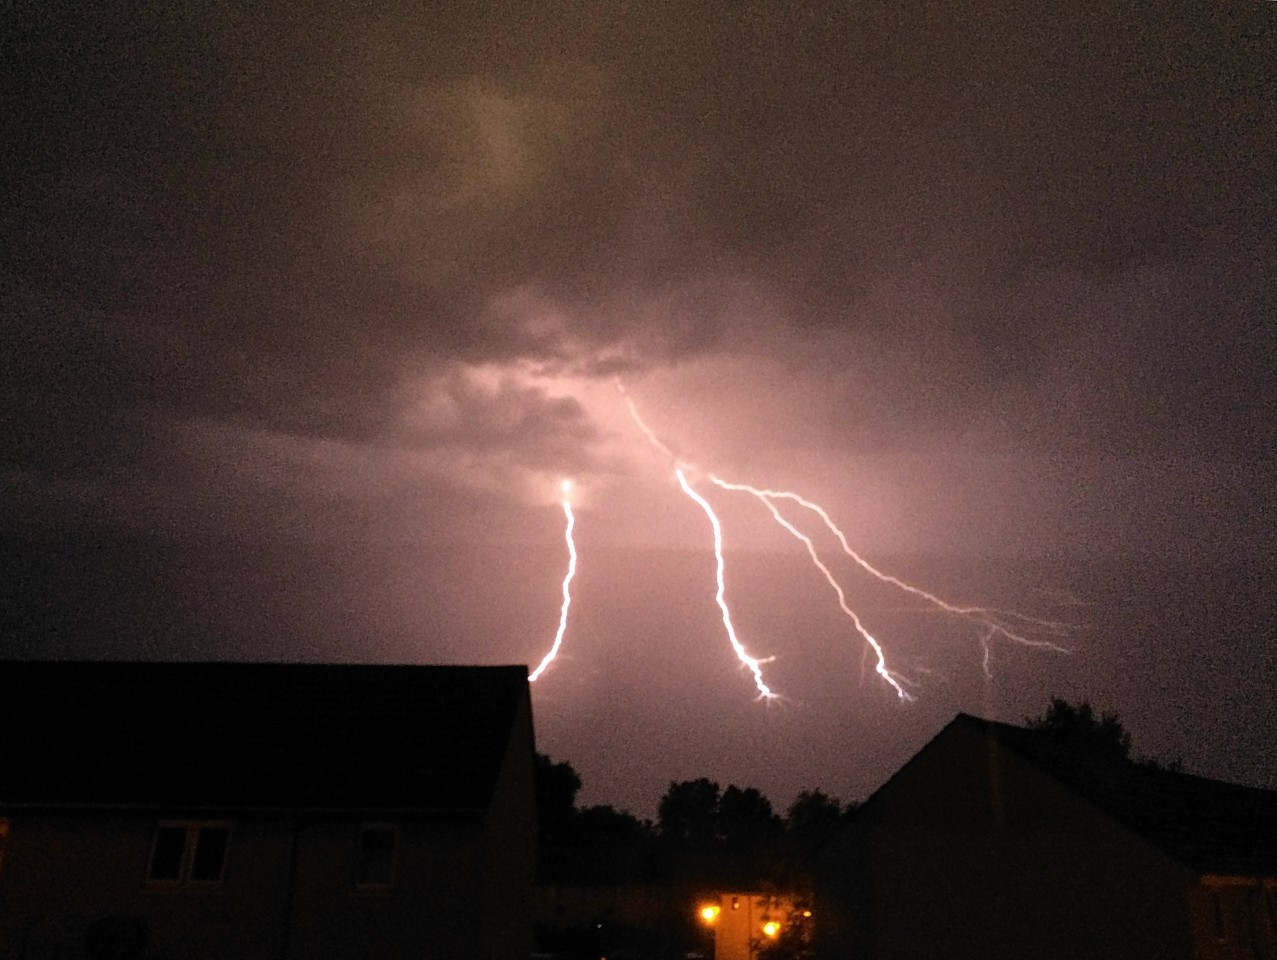 Inverness Pool Closed Because Of Lightning Strike Fears Press And Journal